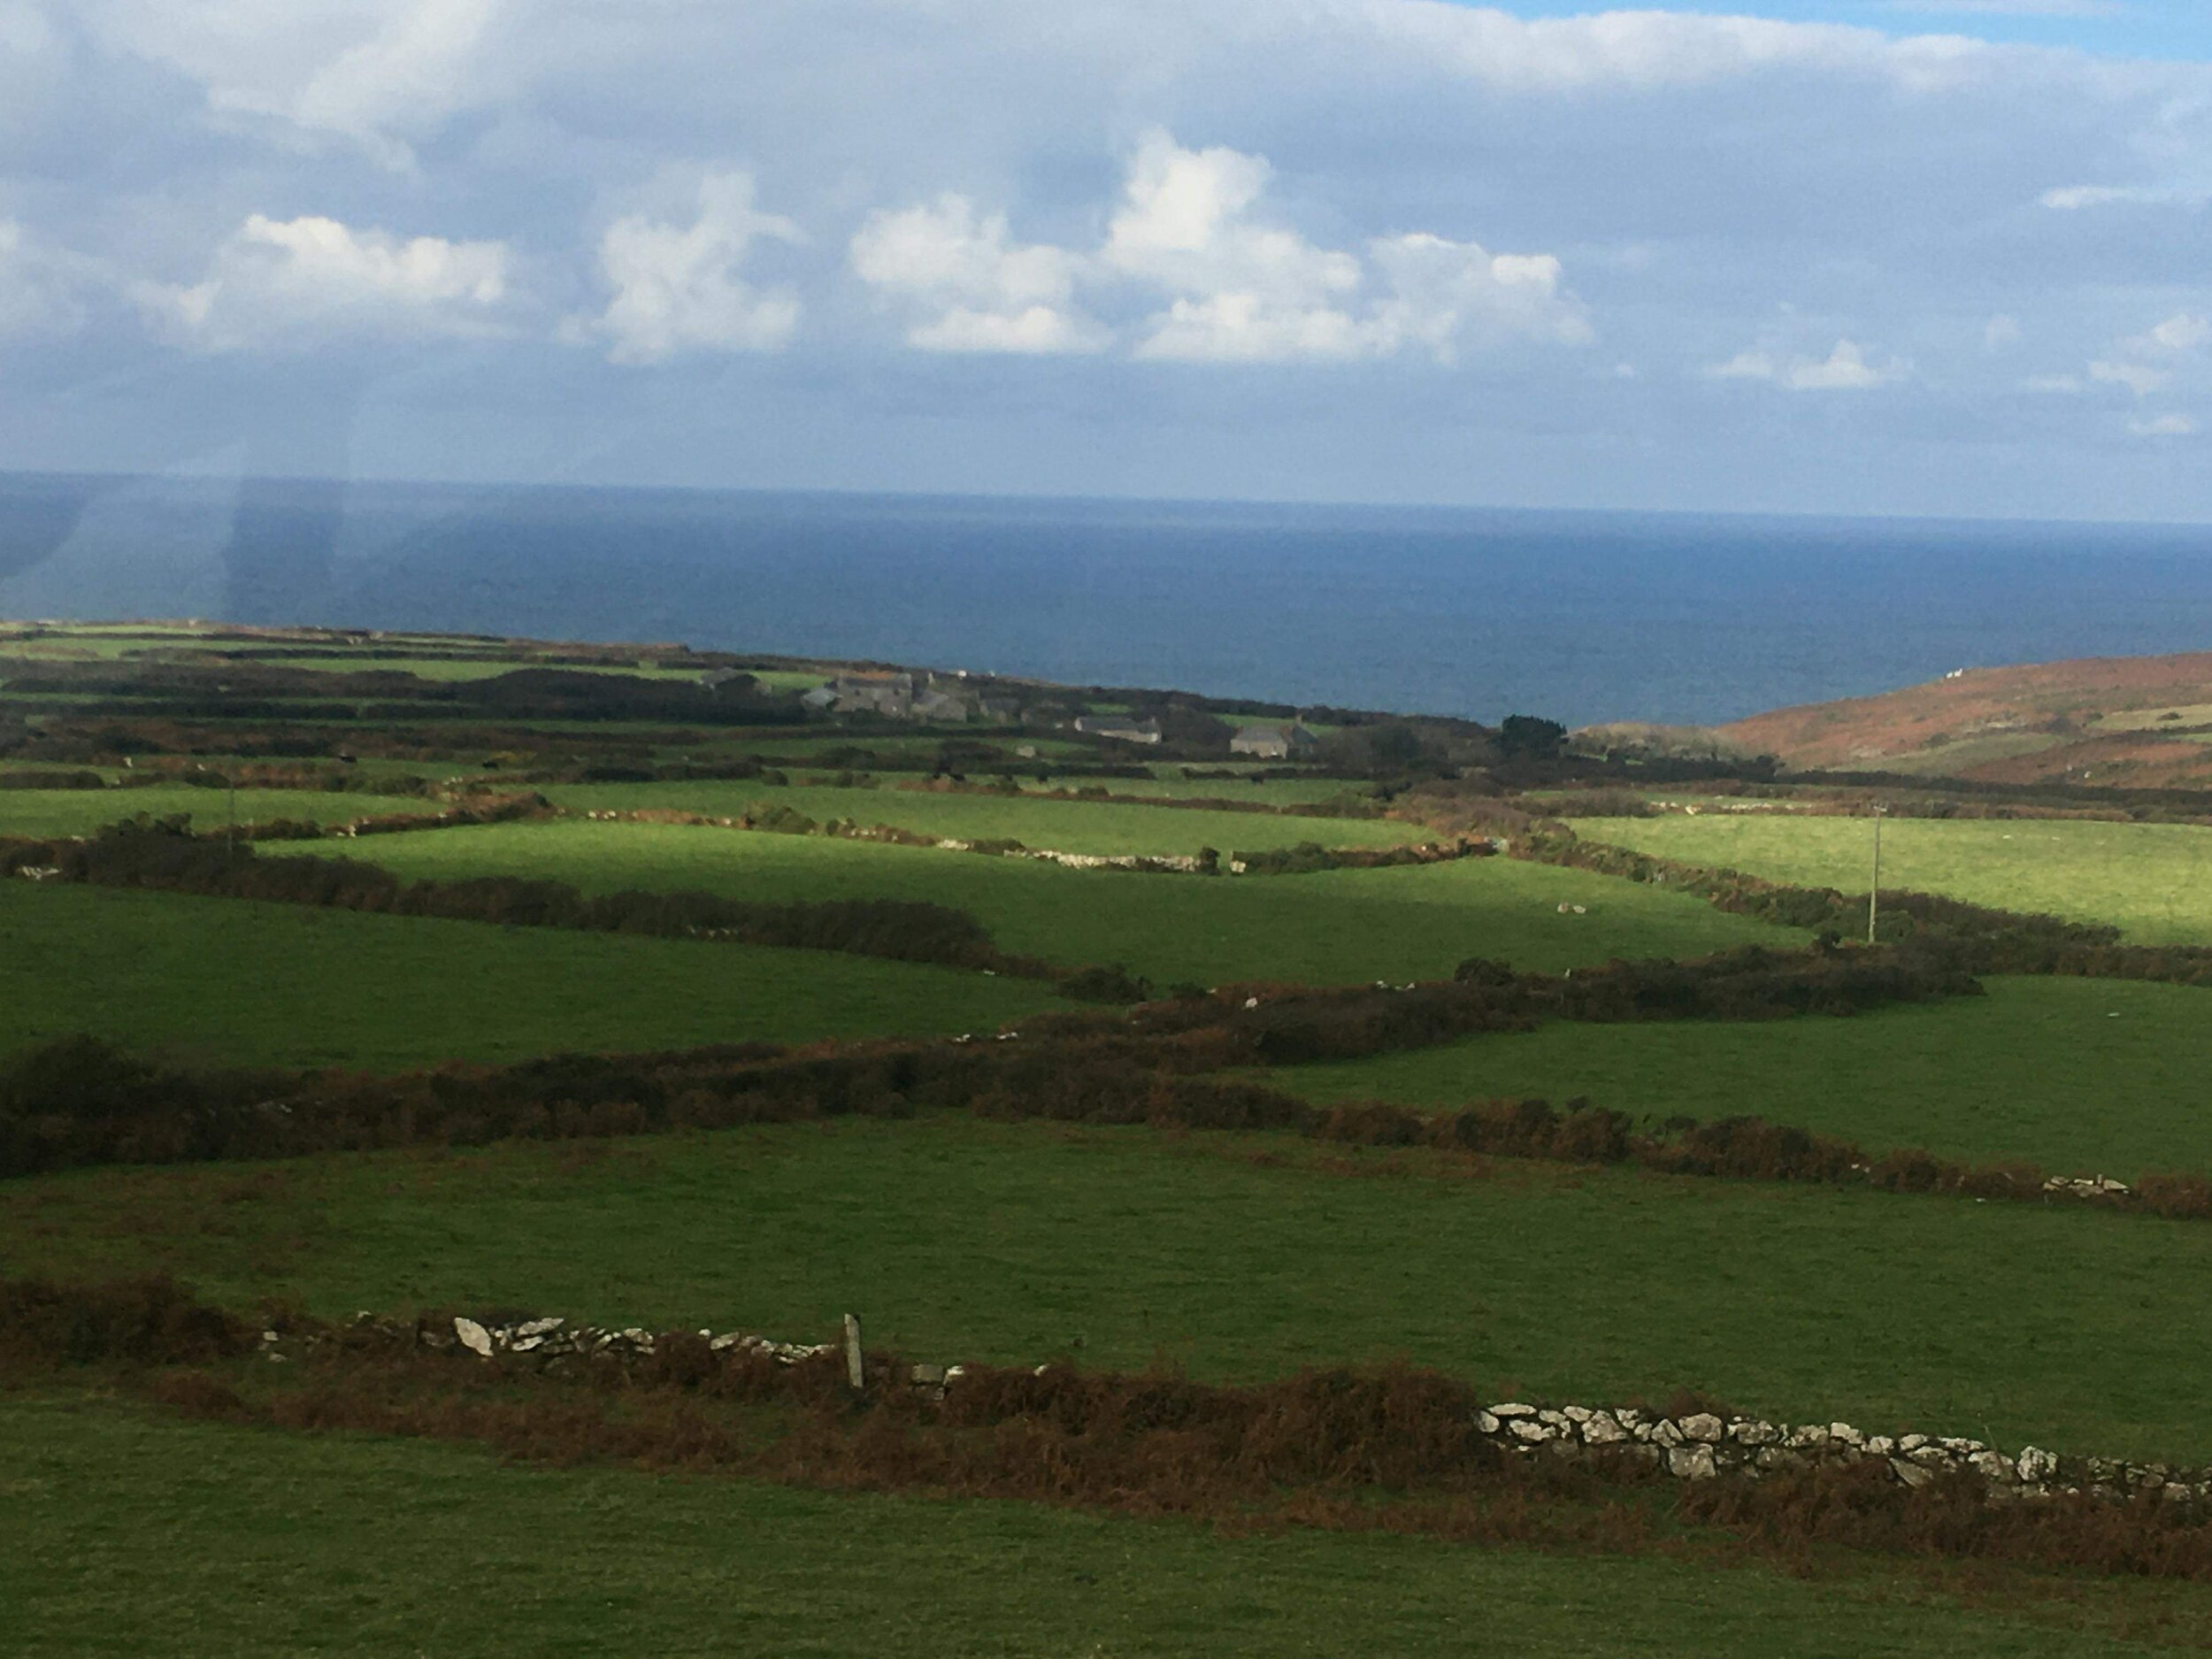 The Cornish coast as seen and enjoyed from the comfort and safety of the A2 to Lands' End.